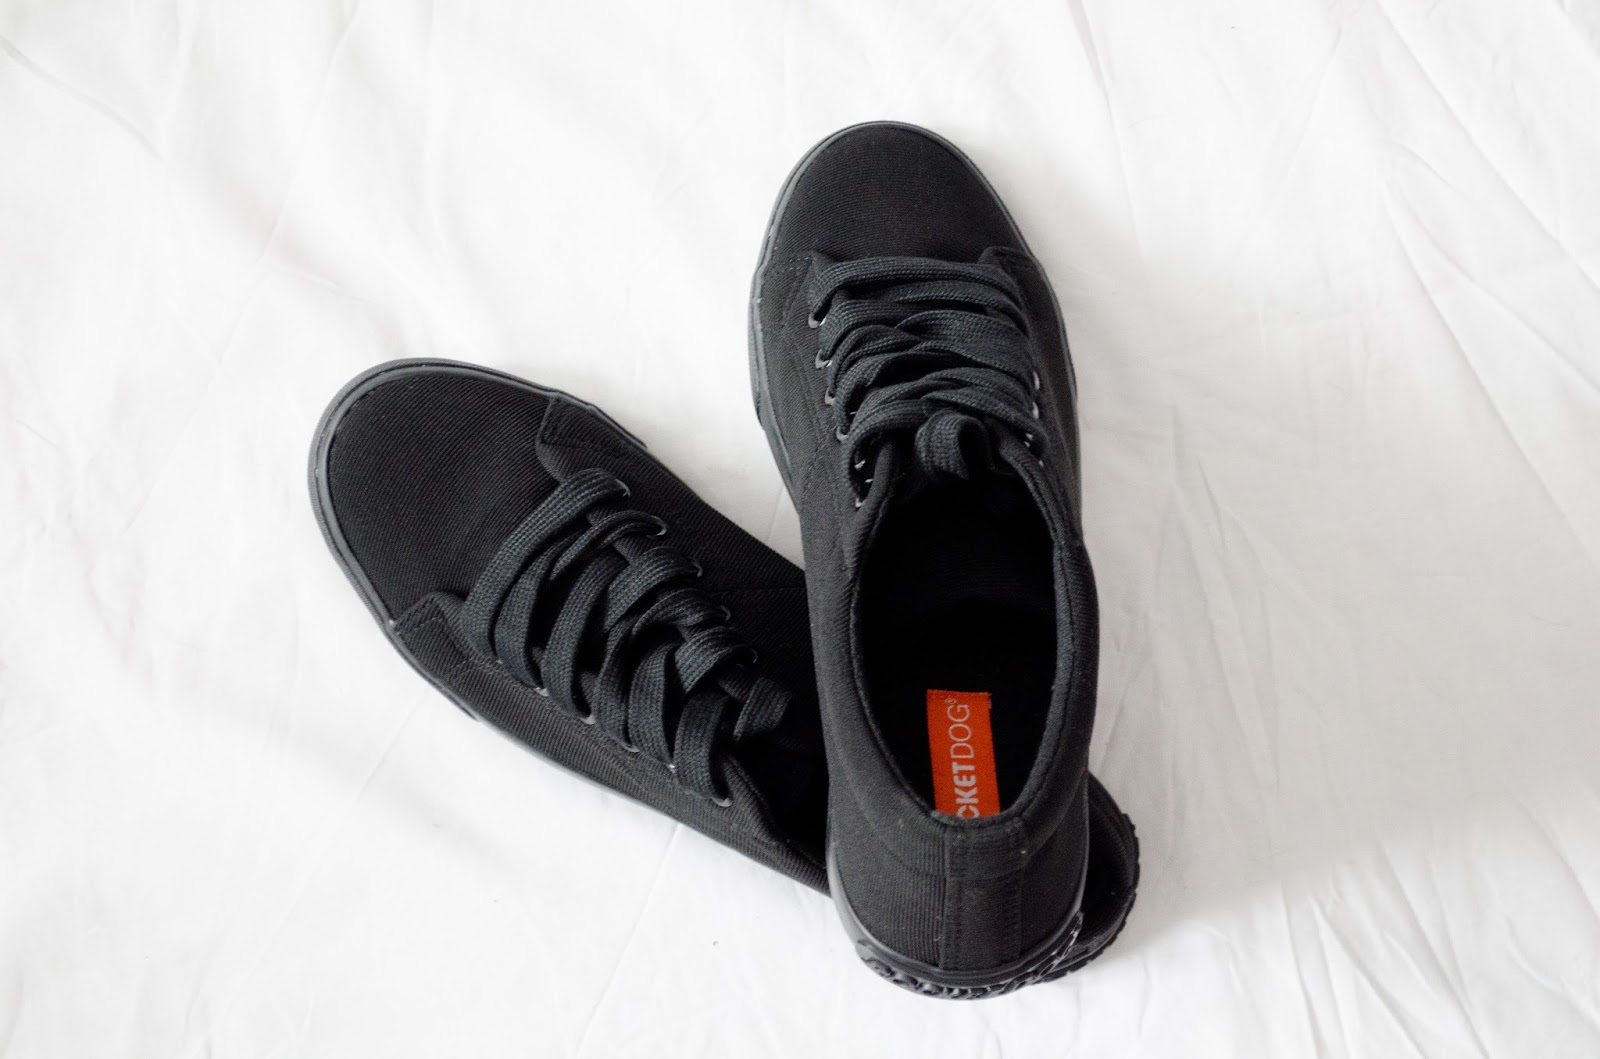 1d986fe97204 Have you heard of this brand before  I d love to know if you re into  trainers or not!